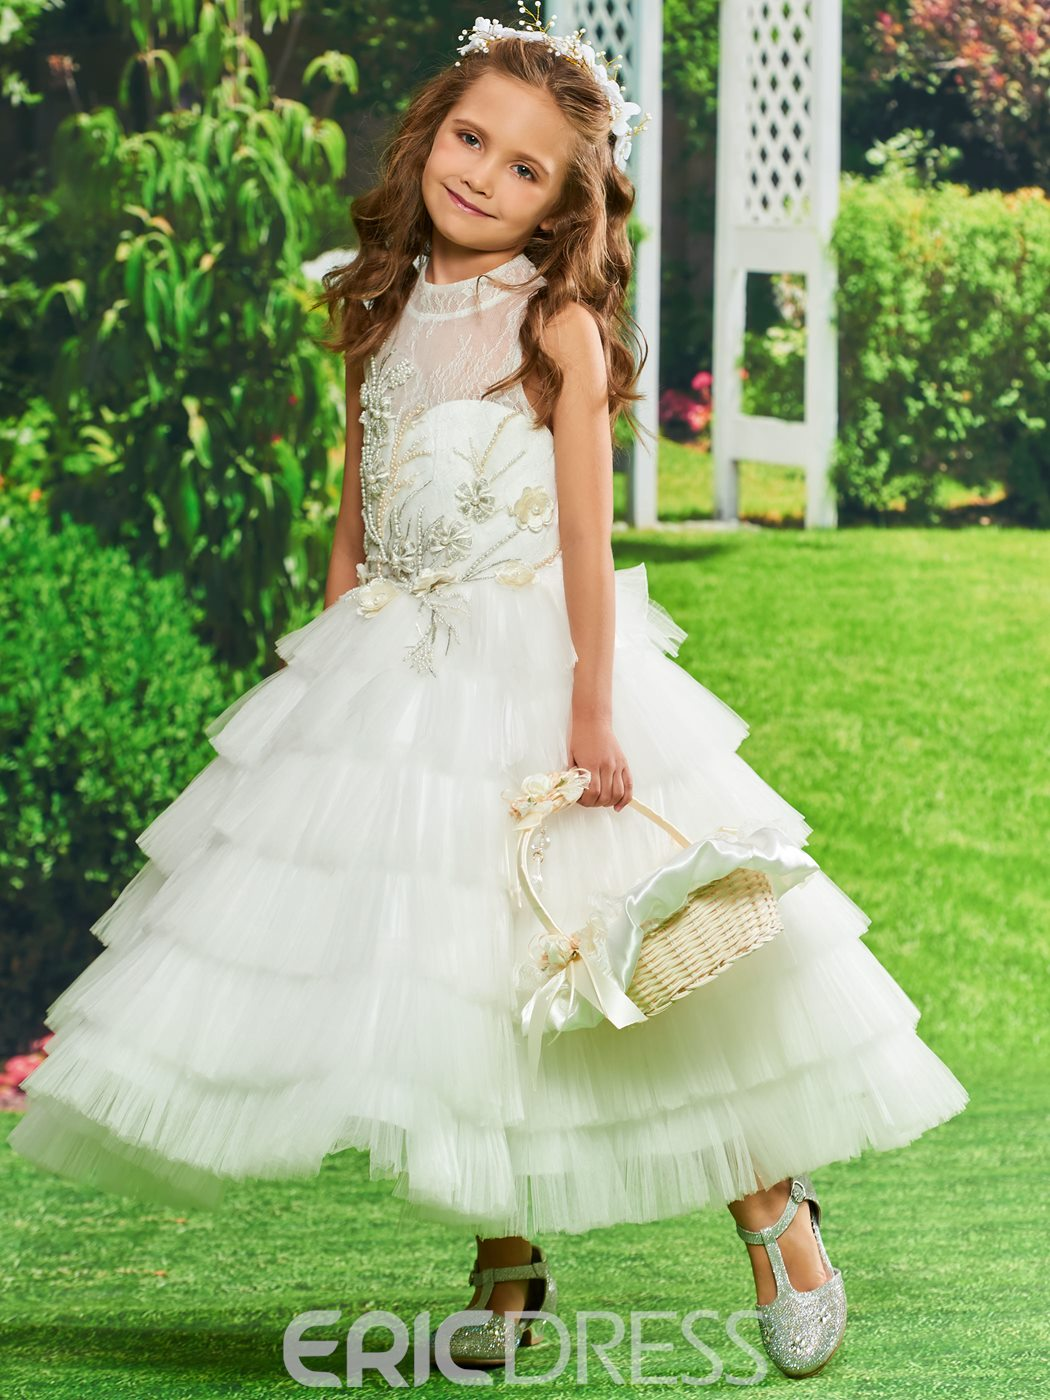 0bdc5ea16 Ericdress Appliques Tulle Ball Gown Flower Girl Dress 13142118 ...